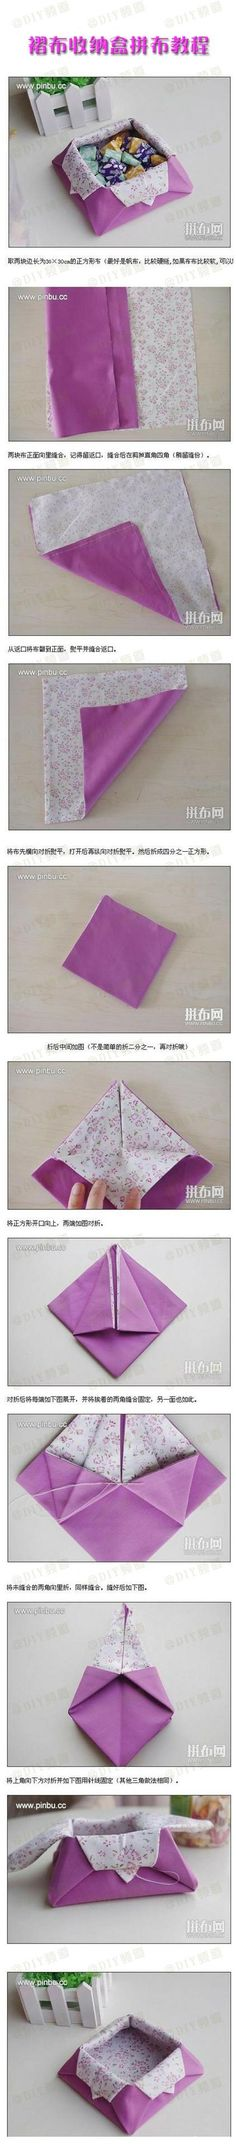 Fabric origami storage boxes